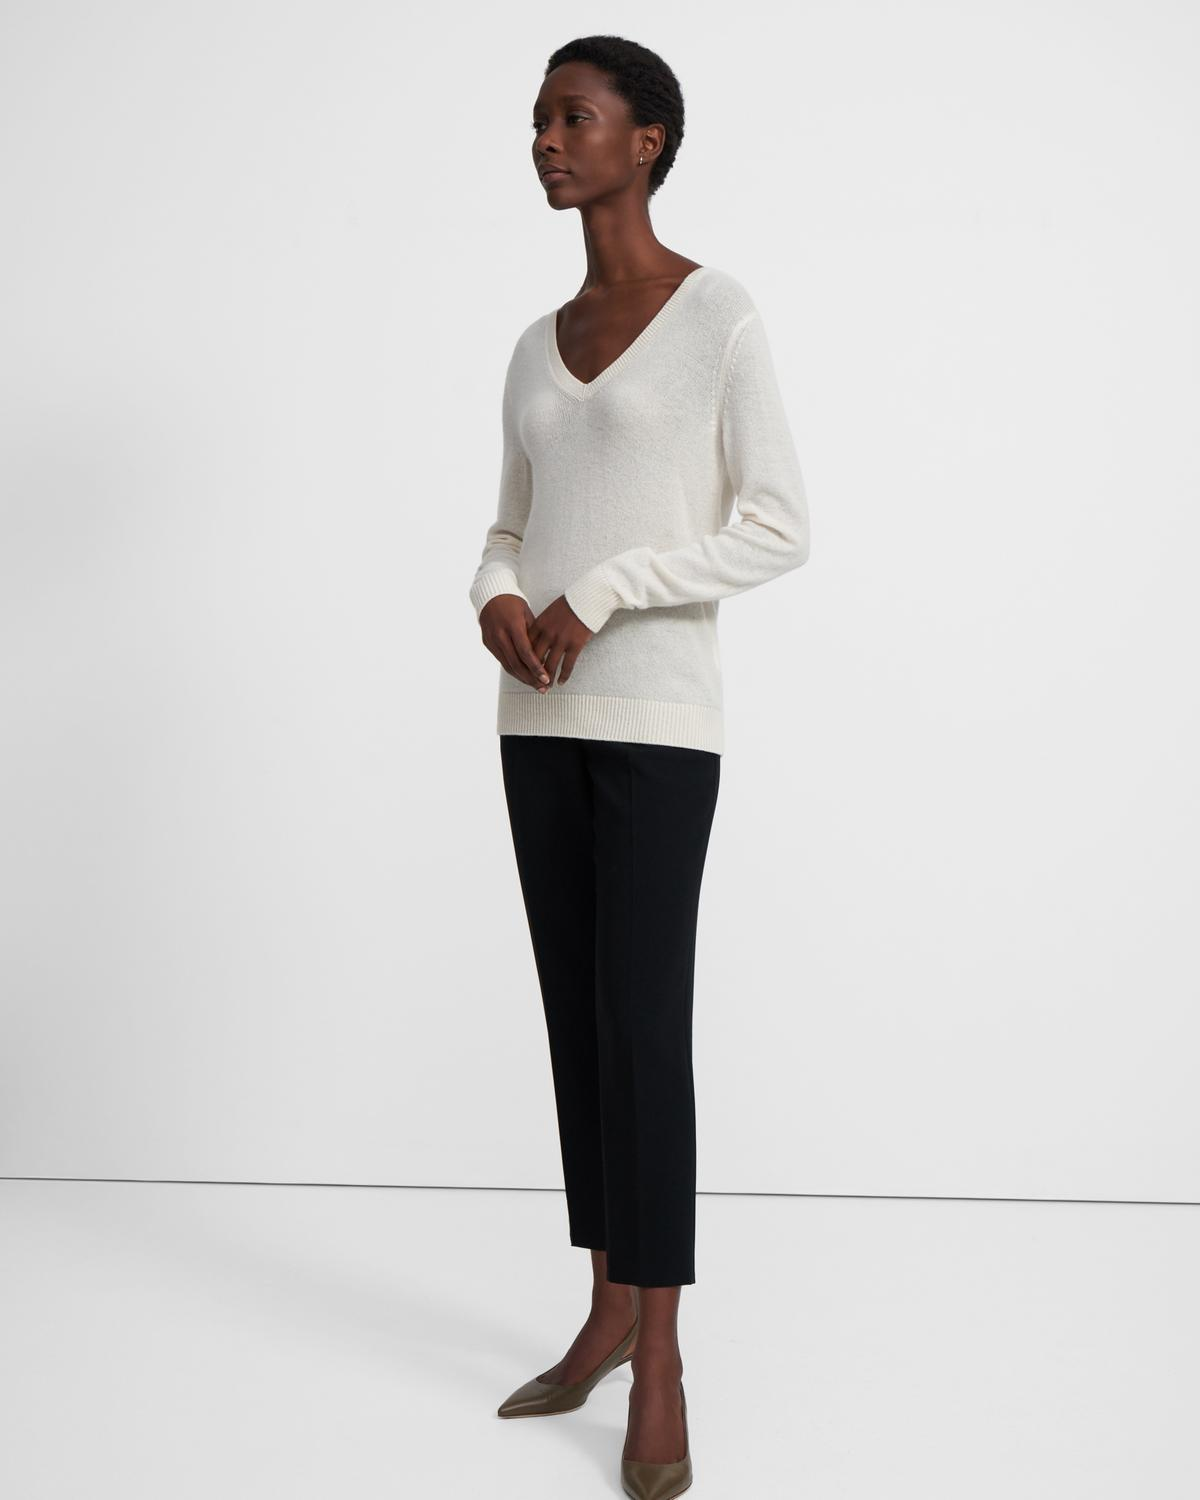 V-Neck Sweater in Feather Cashmere 0 - click to view larger image